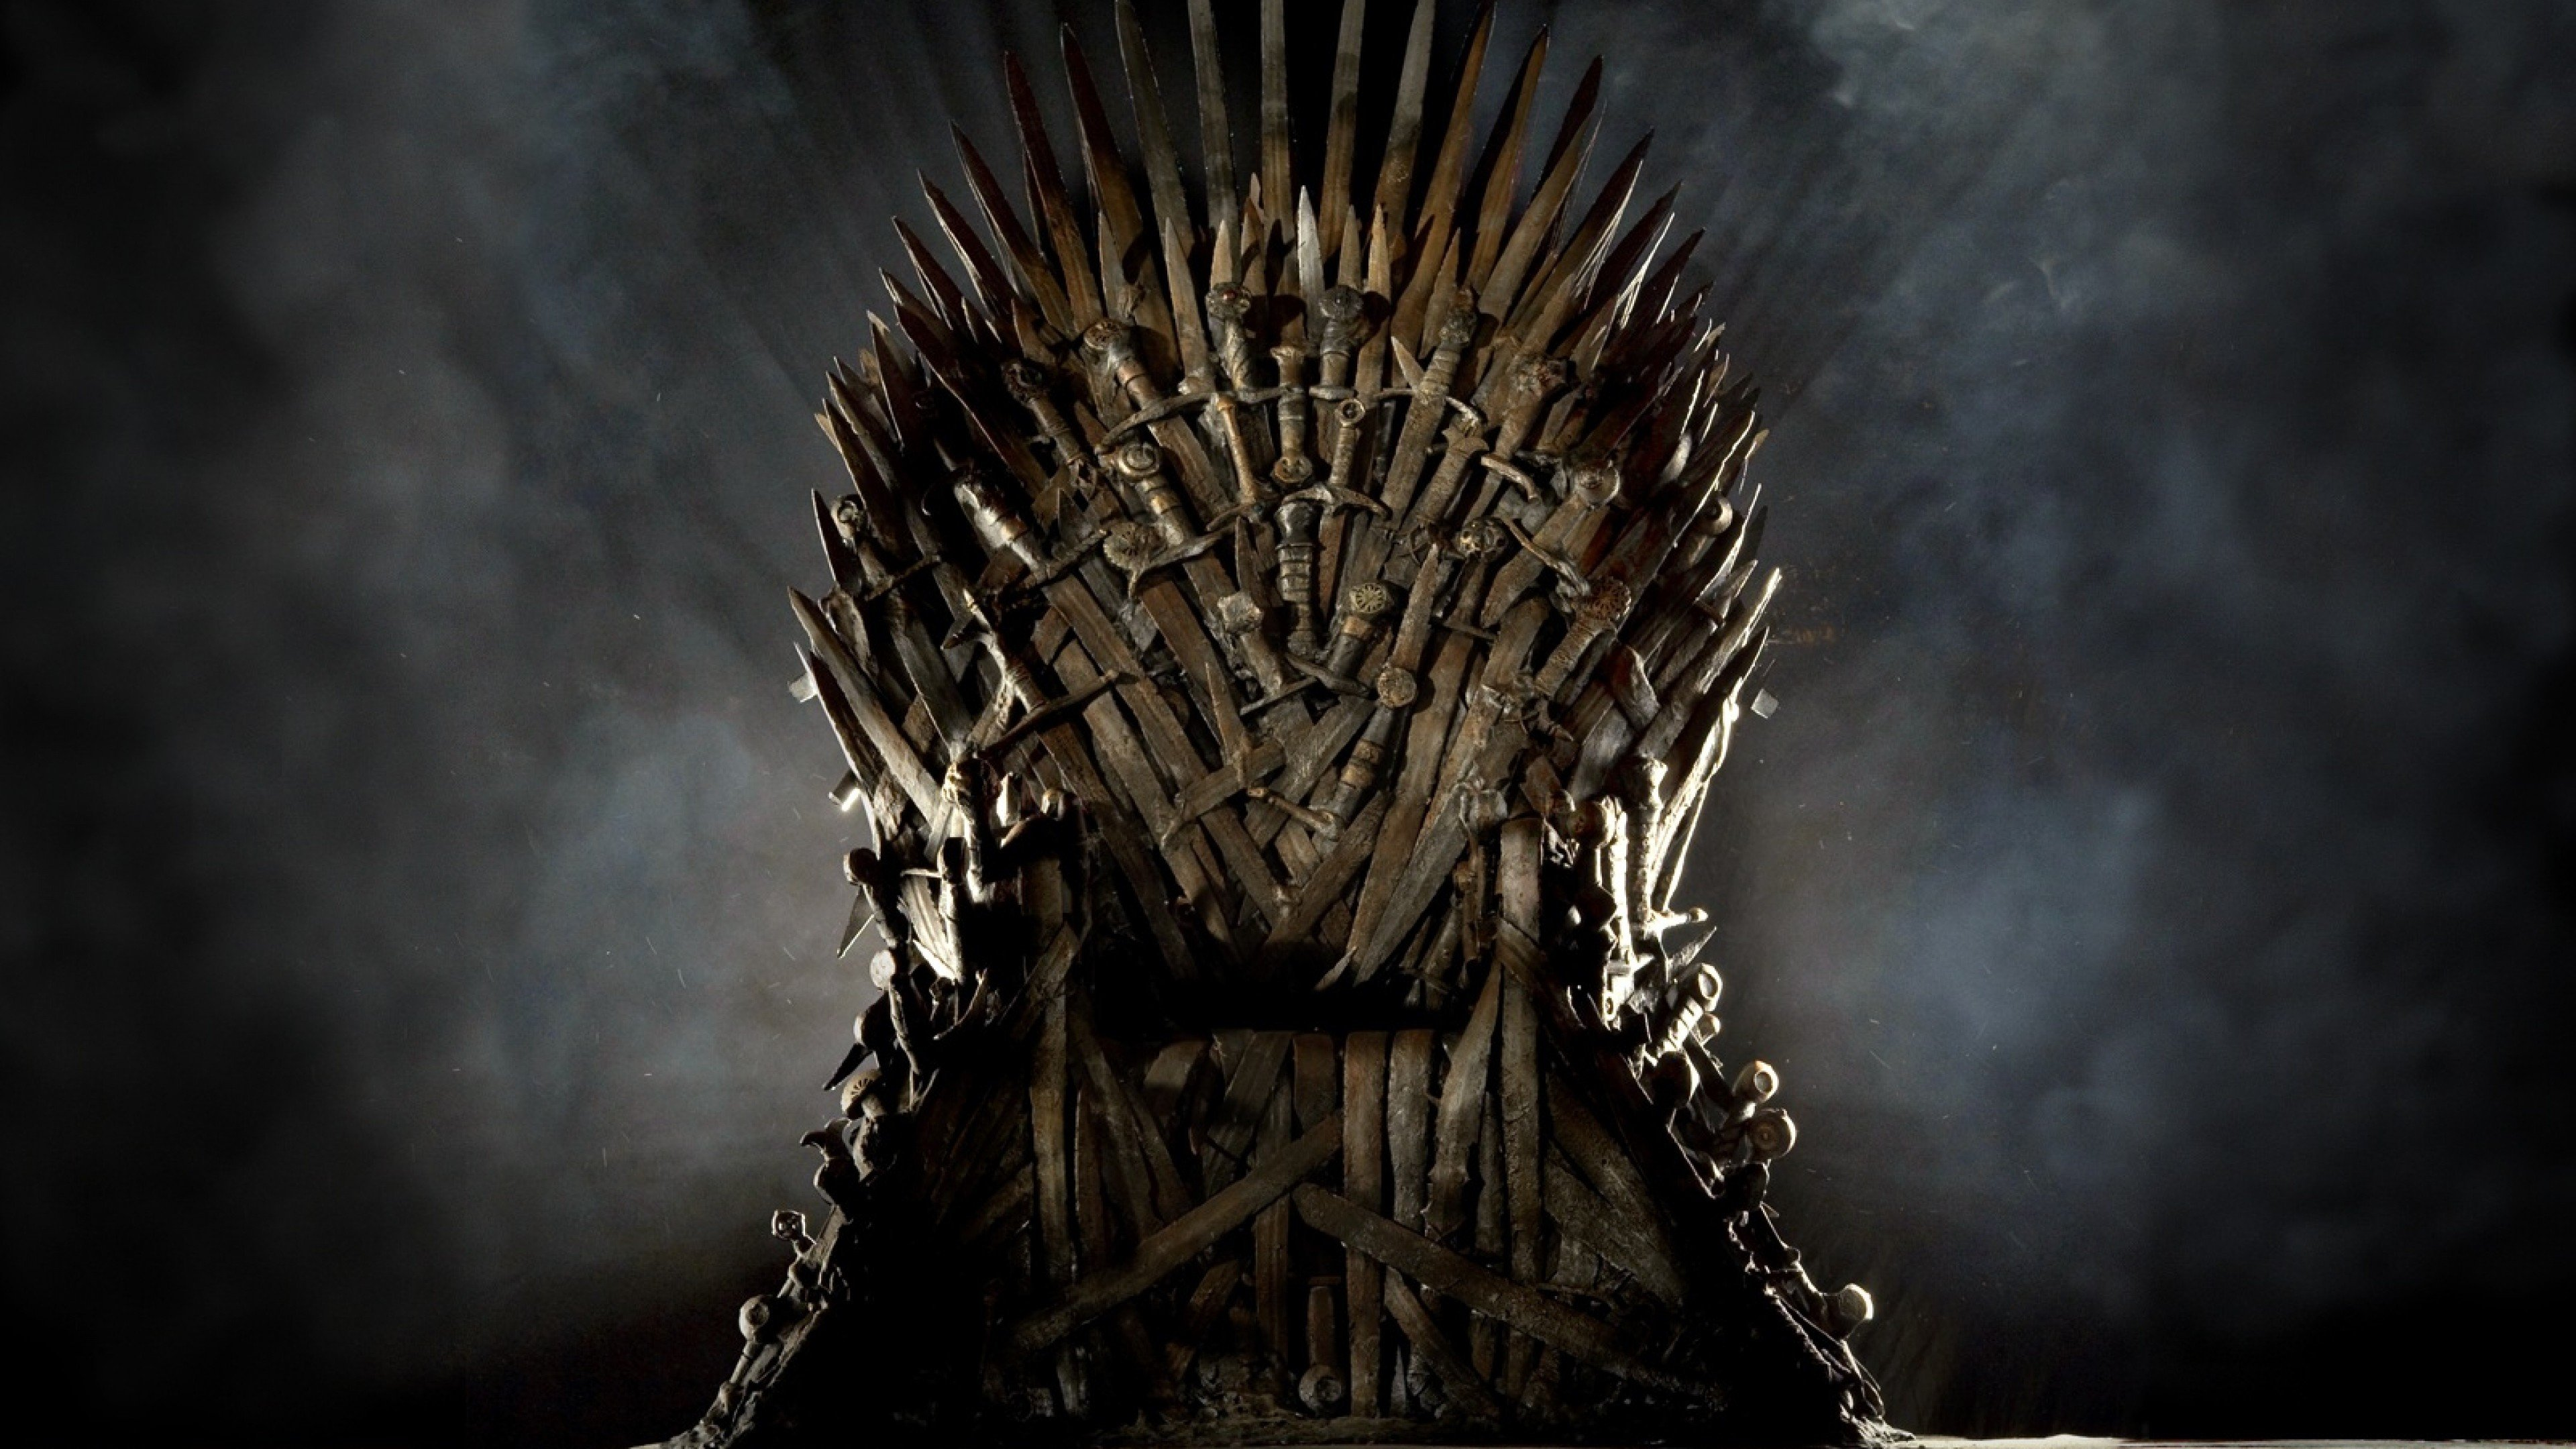 4K Game of Thrones Wallpaper 66 images 3840x2160